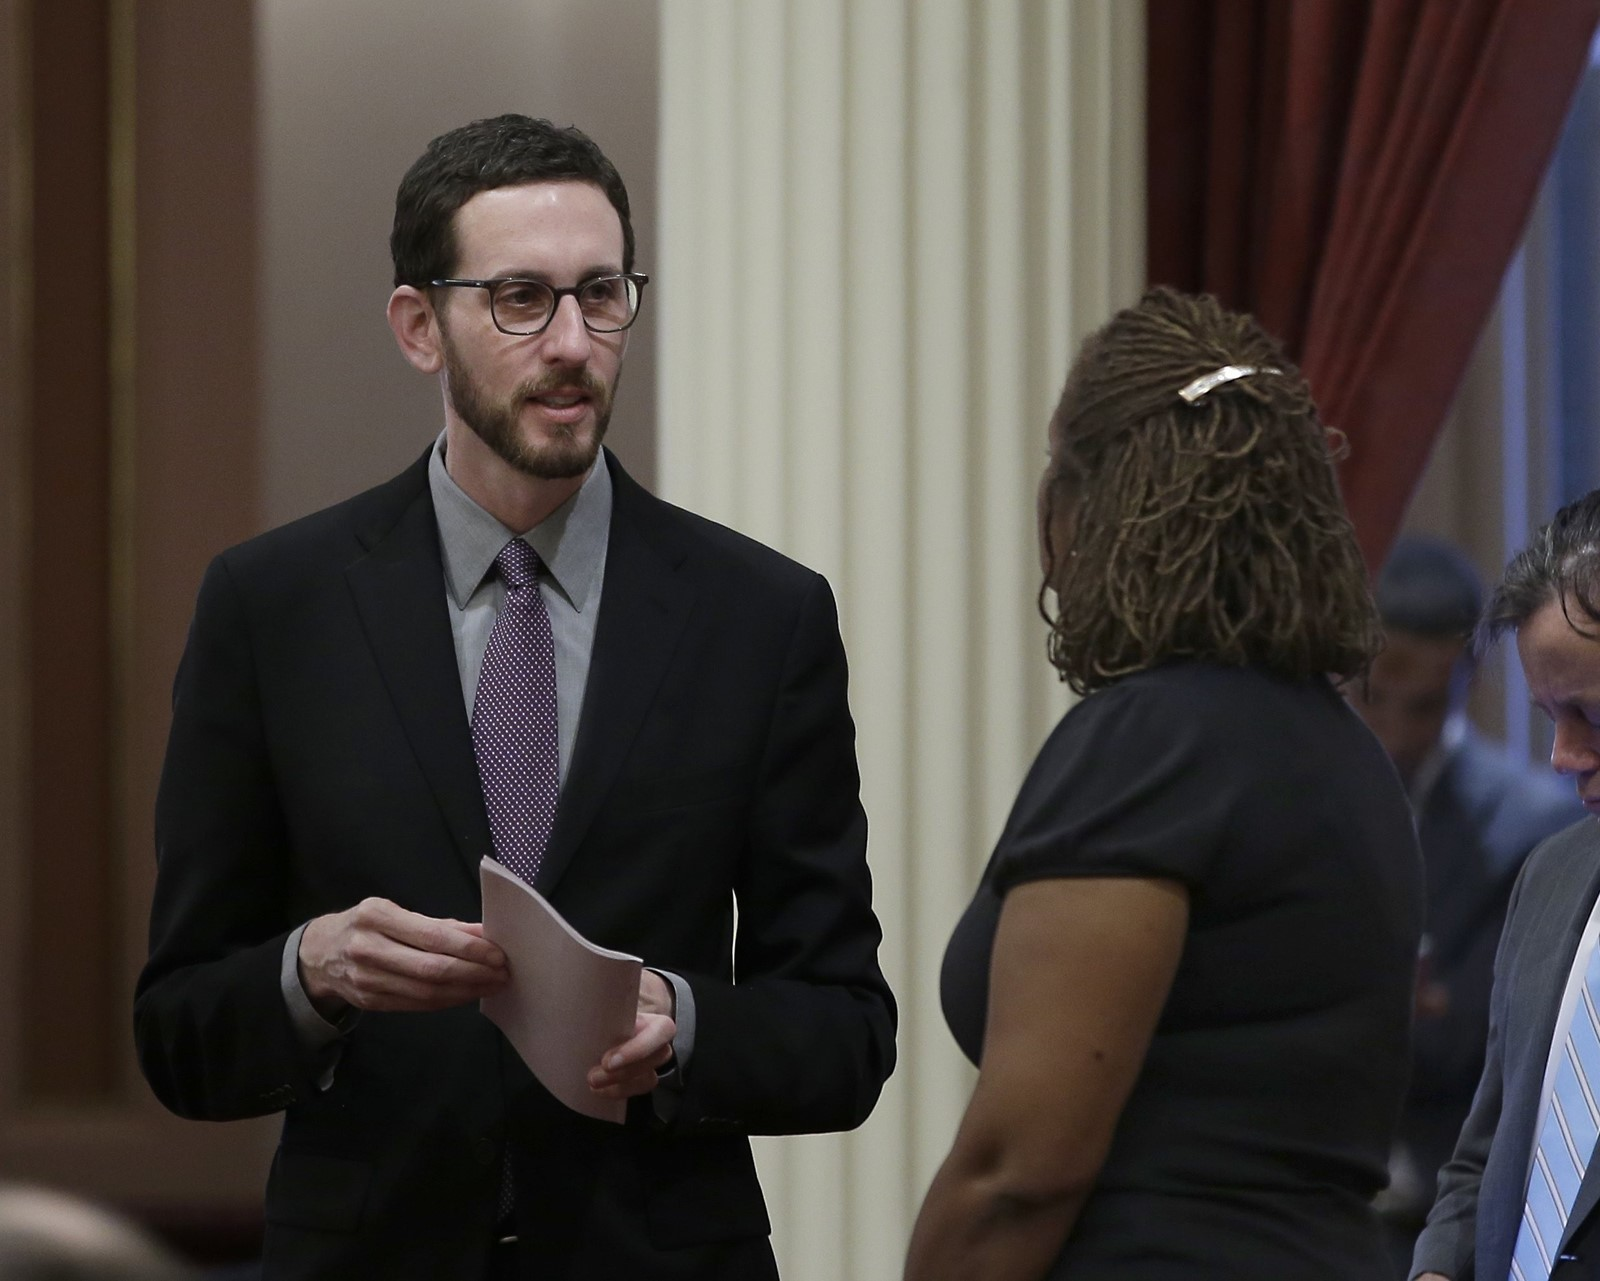 Governor signs bill modernizing California's HIV laws